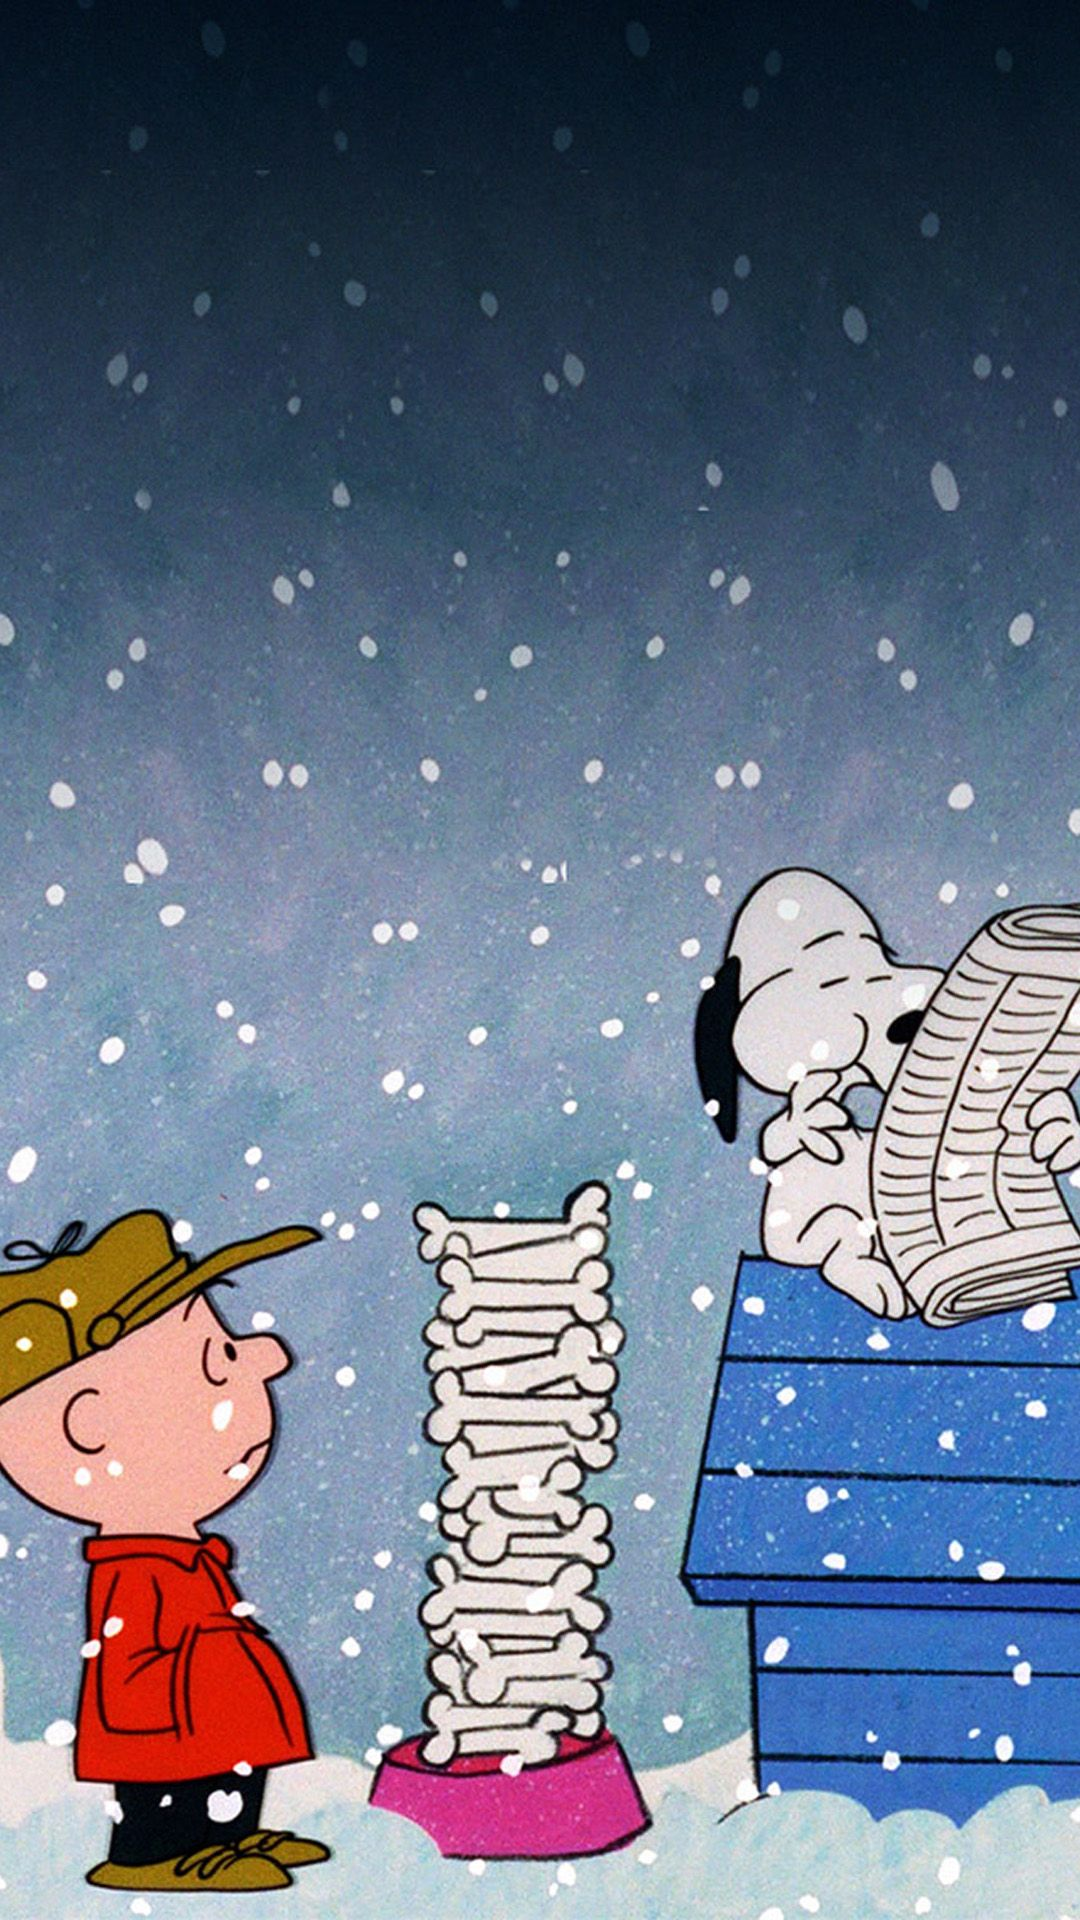 Samsung Galaxy S5 Wallpapers Charlie Brown Wallpaper Snoopy Wallpaper Snoopy Christmas